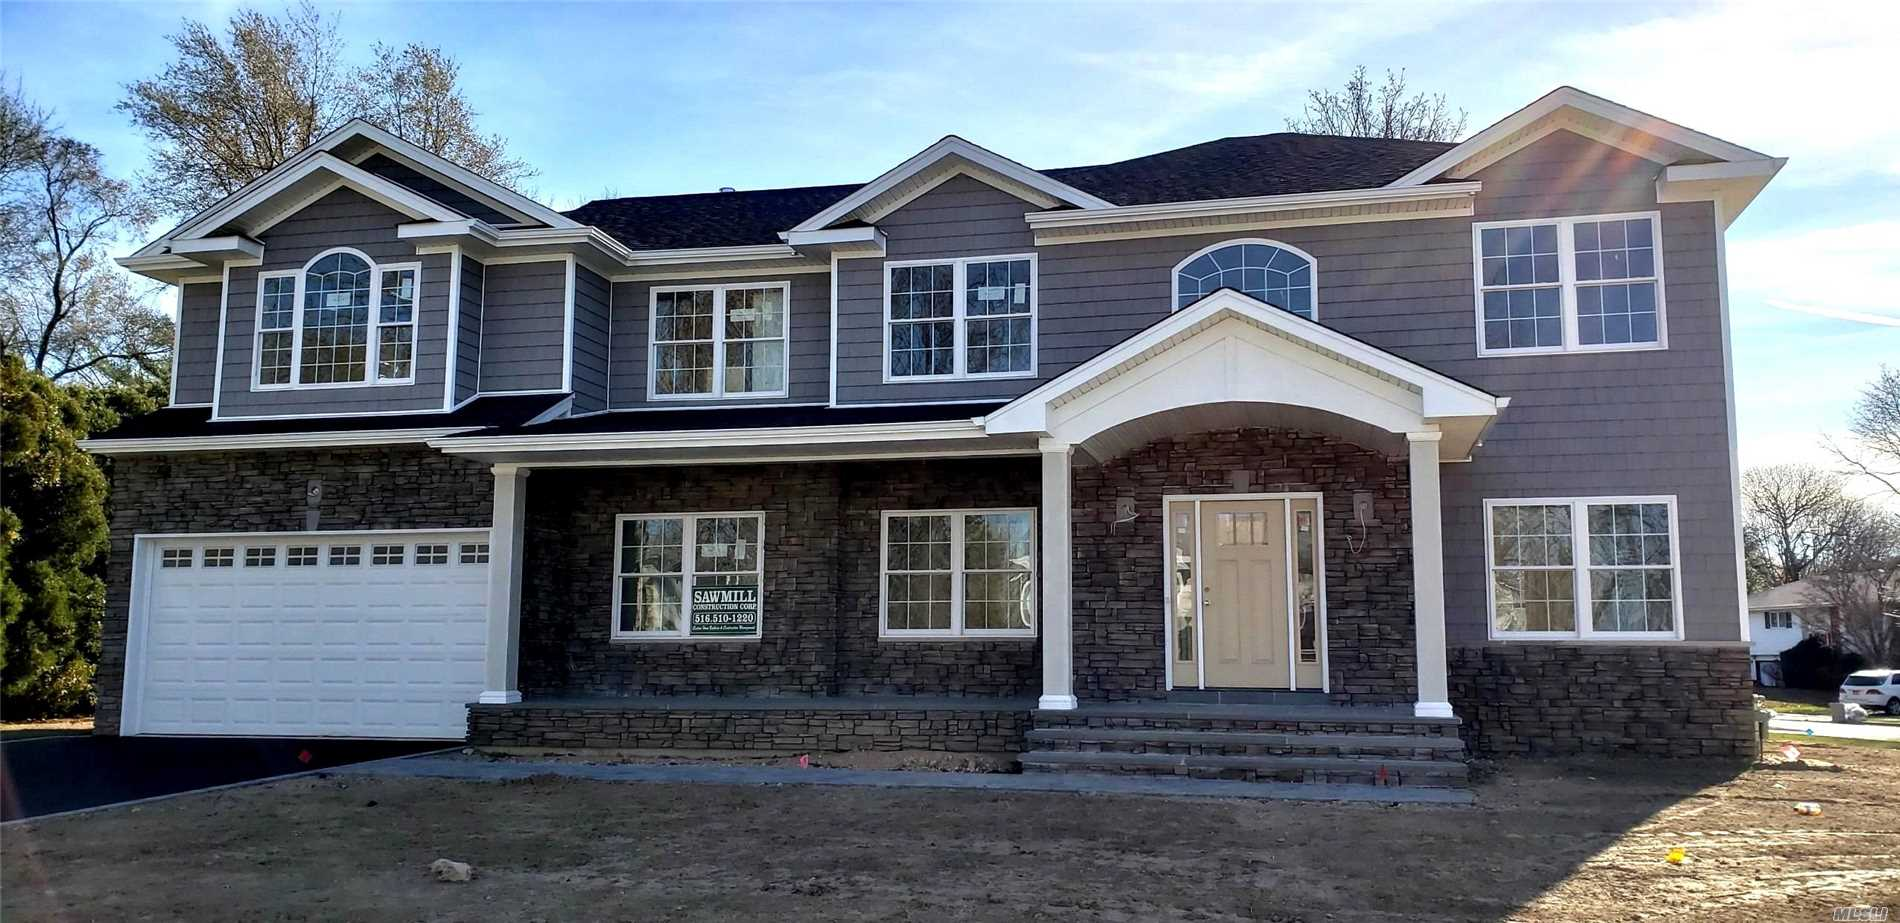 Almost Complete!~ Sought Out Flower Section! N. Syosset! 5Br, 4.5Bth Colonial. Exquisite! Open Concept Floor Plan. Top Quality Construction W/Elegant Finishes. Grand Entry! Eik, Flr, Fdr, Fam Rm W/Frpl, Pantry, Mudroom, Office/Guest Rm W Full Bath, 2nd Fl: Master Suite W 2 Walk In Closets, Parklike Property! Berry Hill Elementary! Pictures Of Interior And Rendering And Are Not Exact